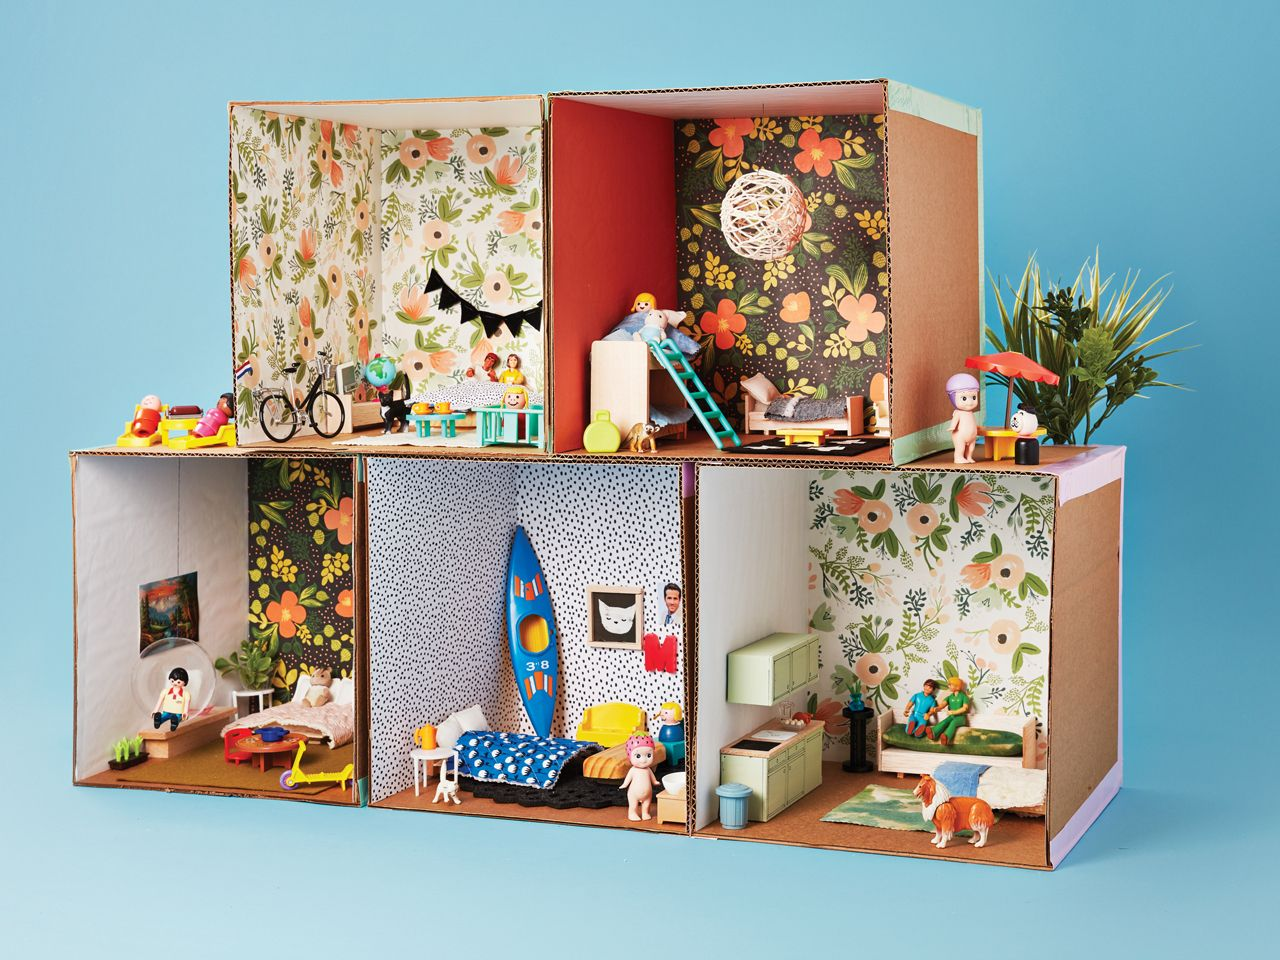 How to make a cardboard dollhouse cardboard crafts crafts and